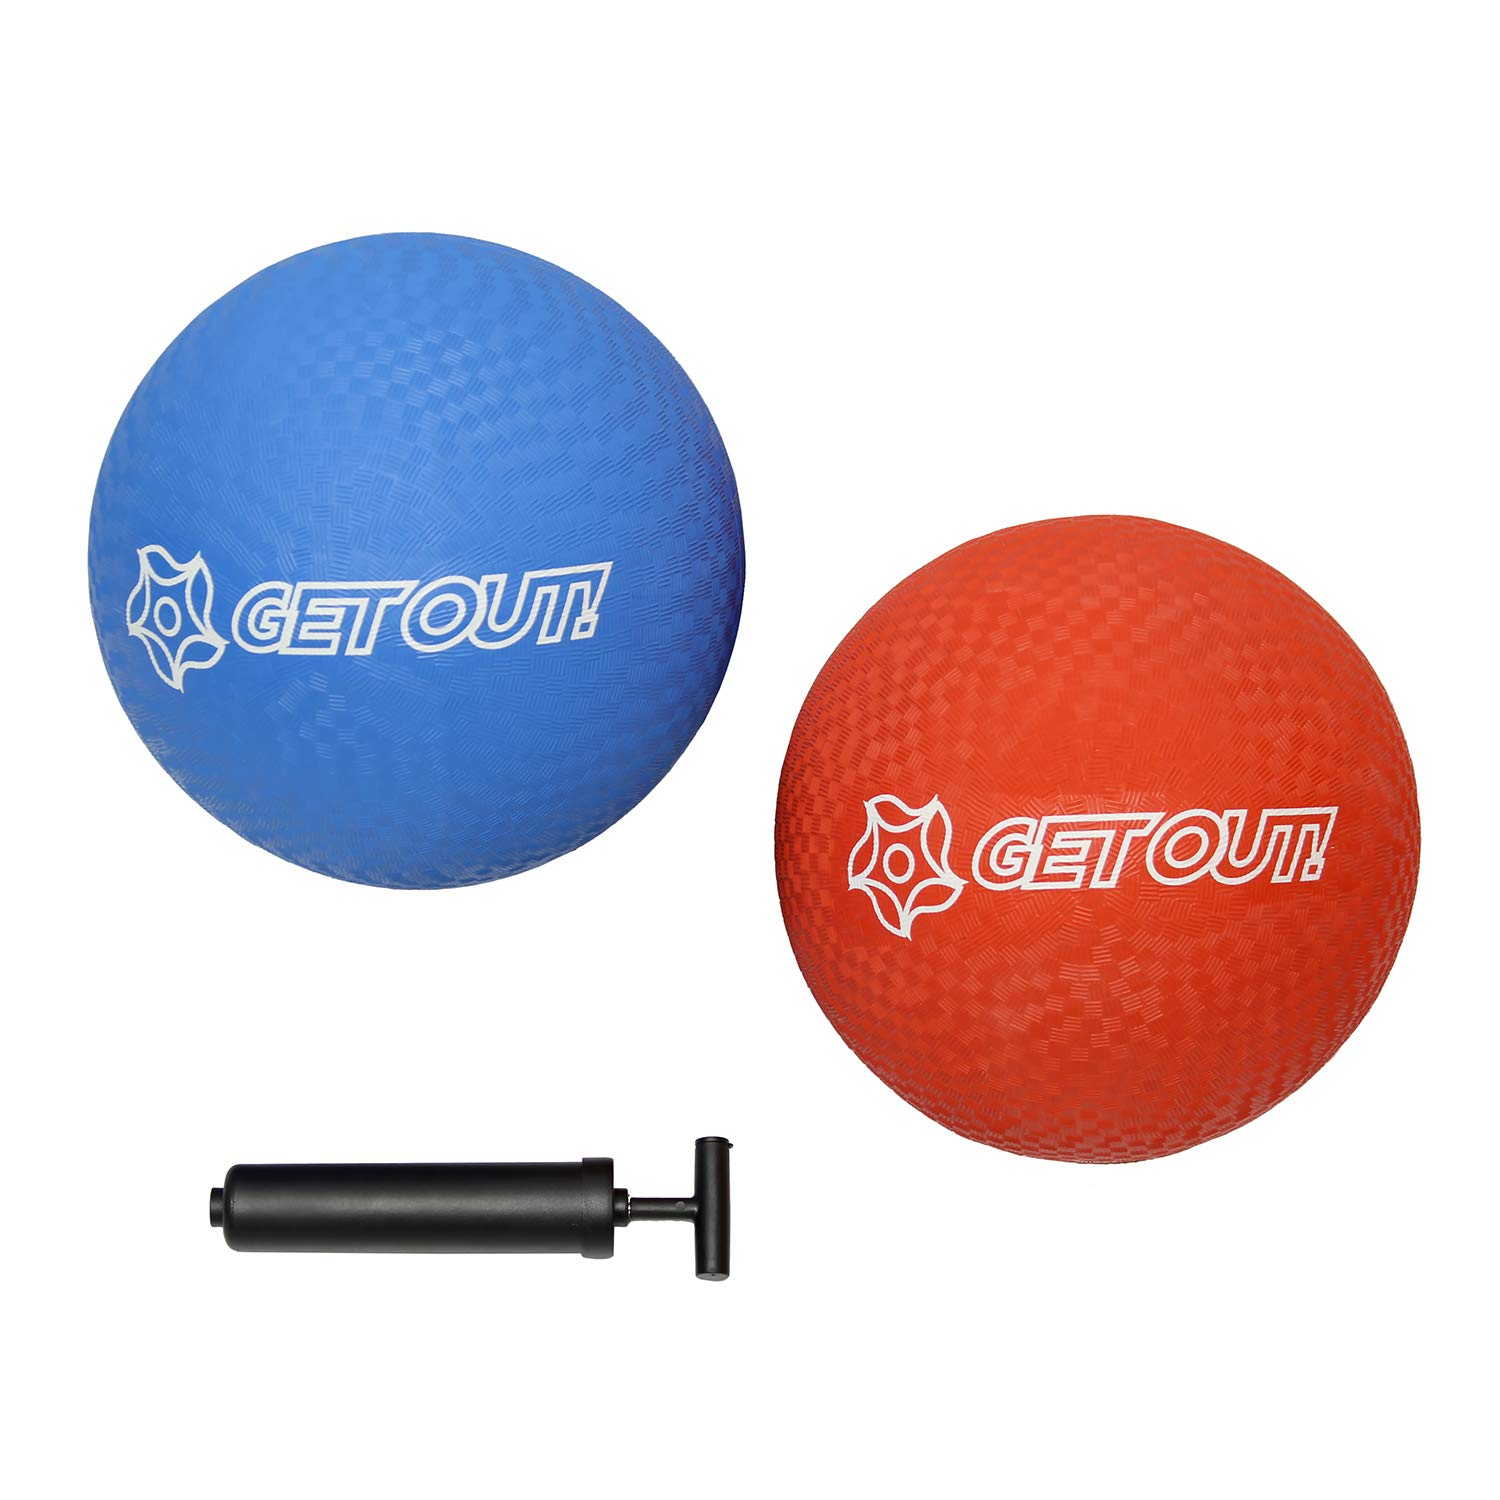 Get Out! Rubber Play Ball - 2 Pack Rubber Kickball 10 Inch w/ Hand Pump Inflator, Playground Balls for Kids